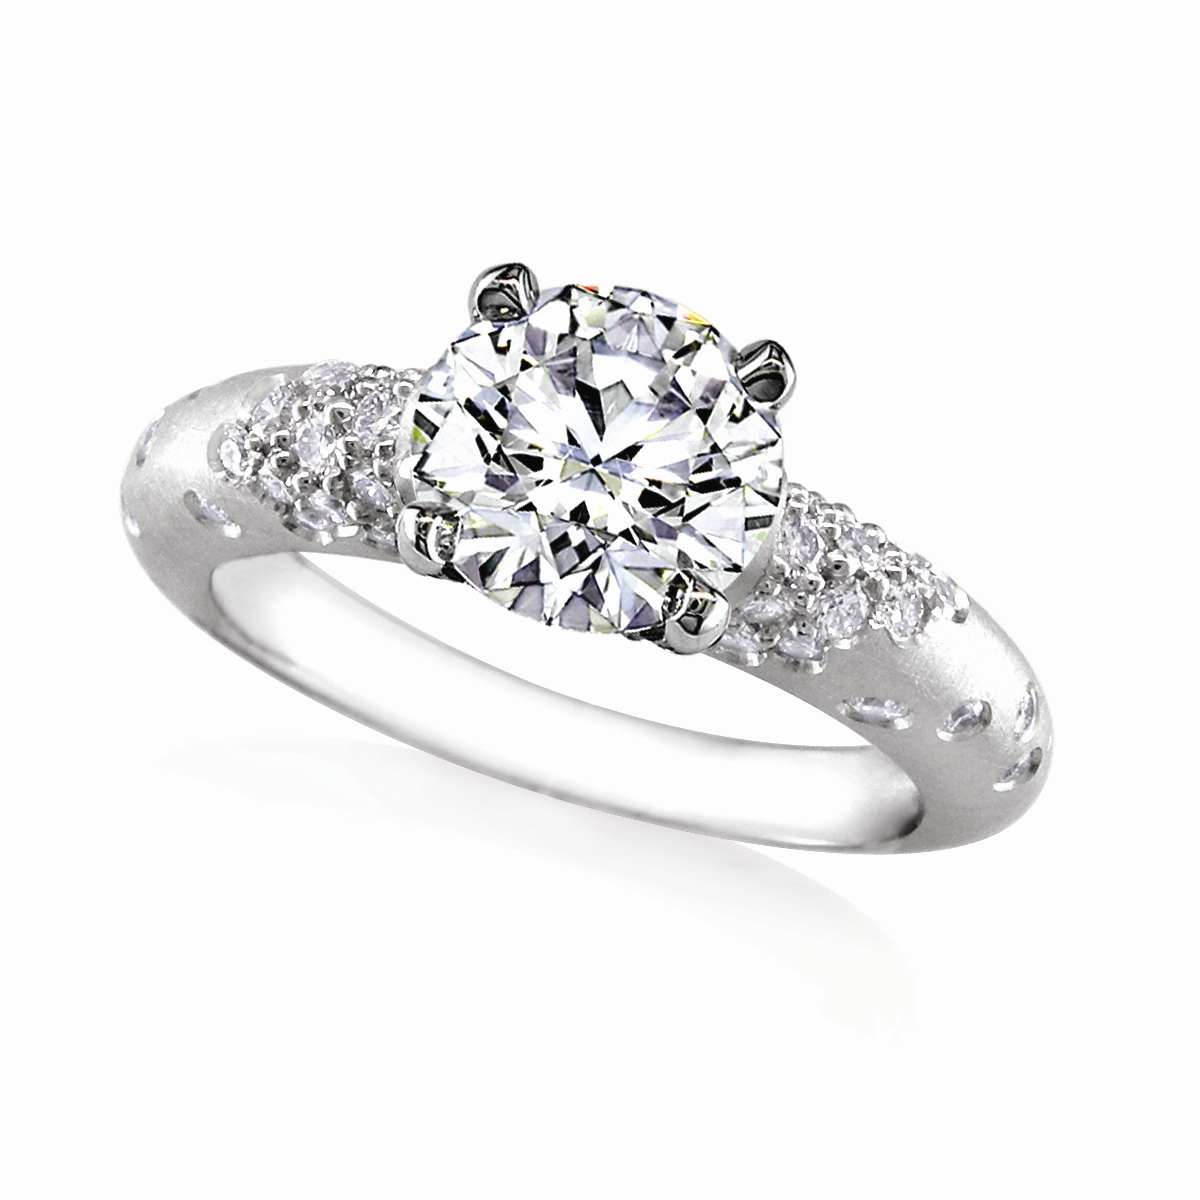 Whiteflash-champagne-petite-diamond-engagement-ring.original